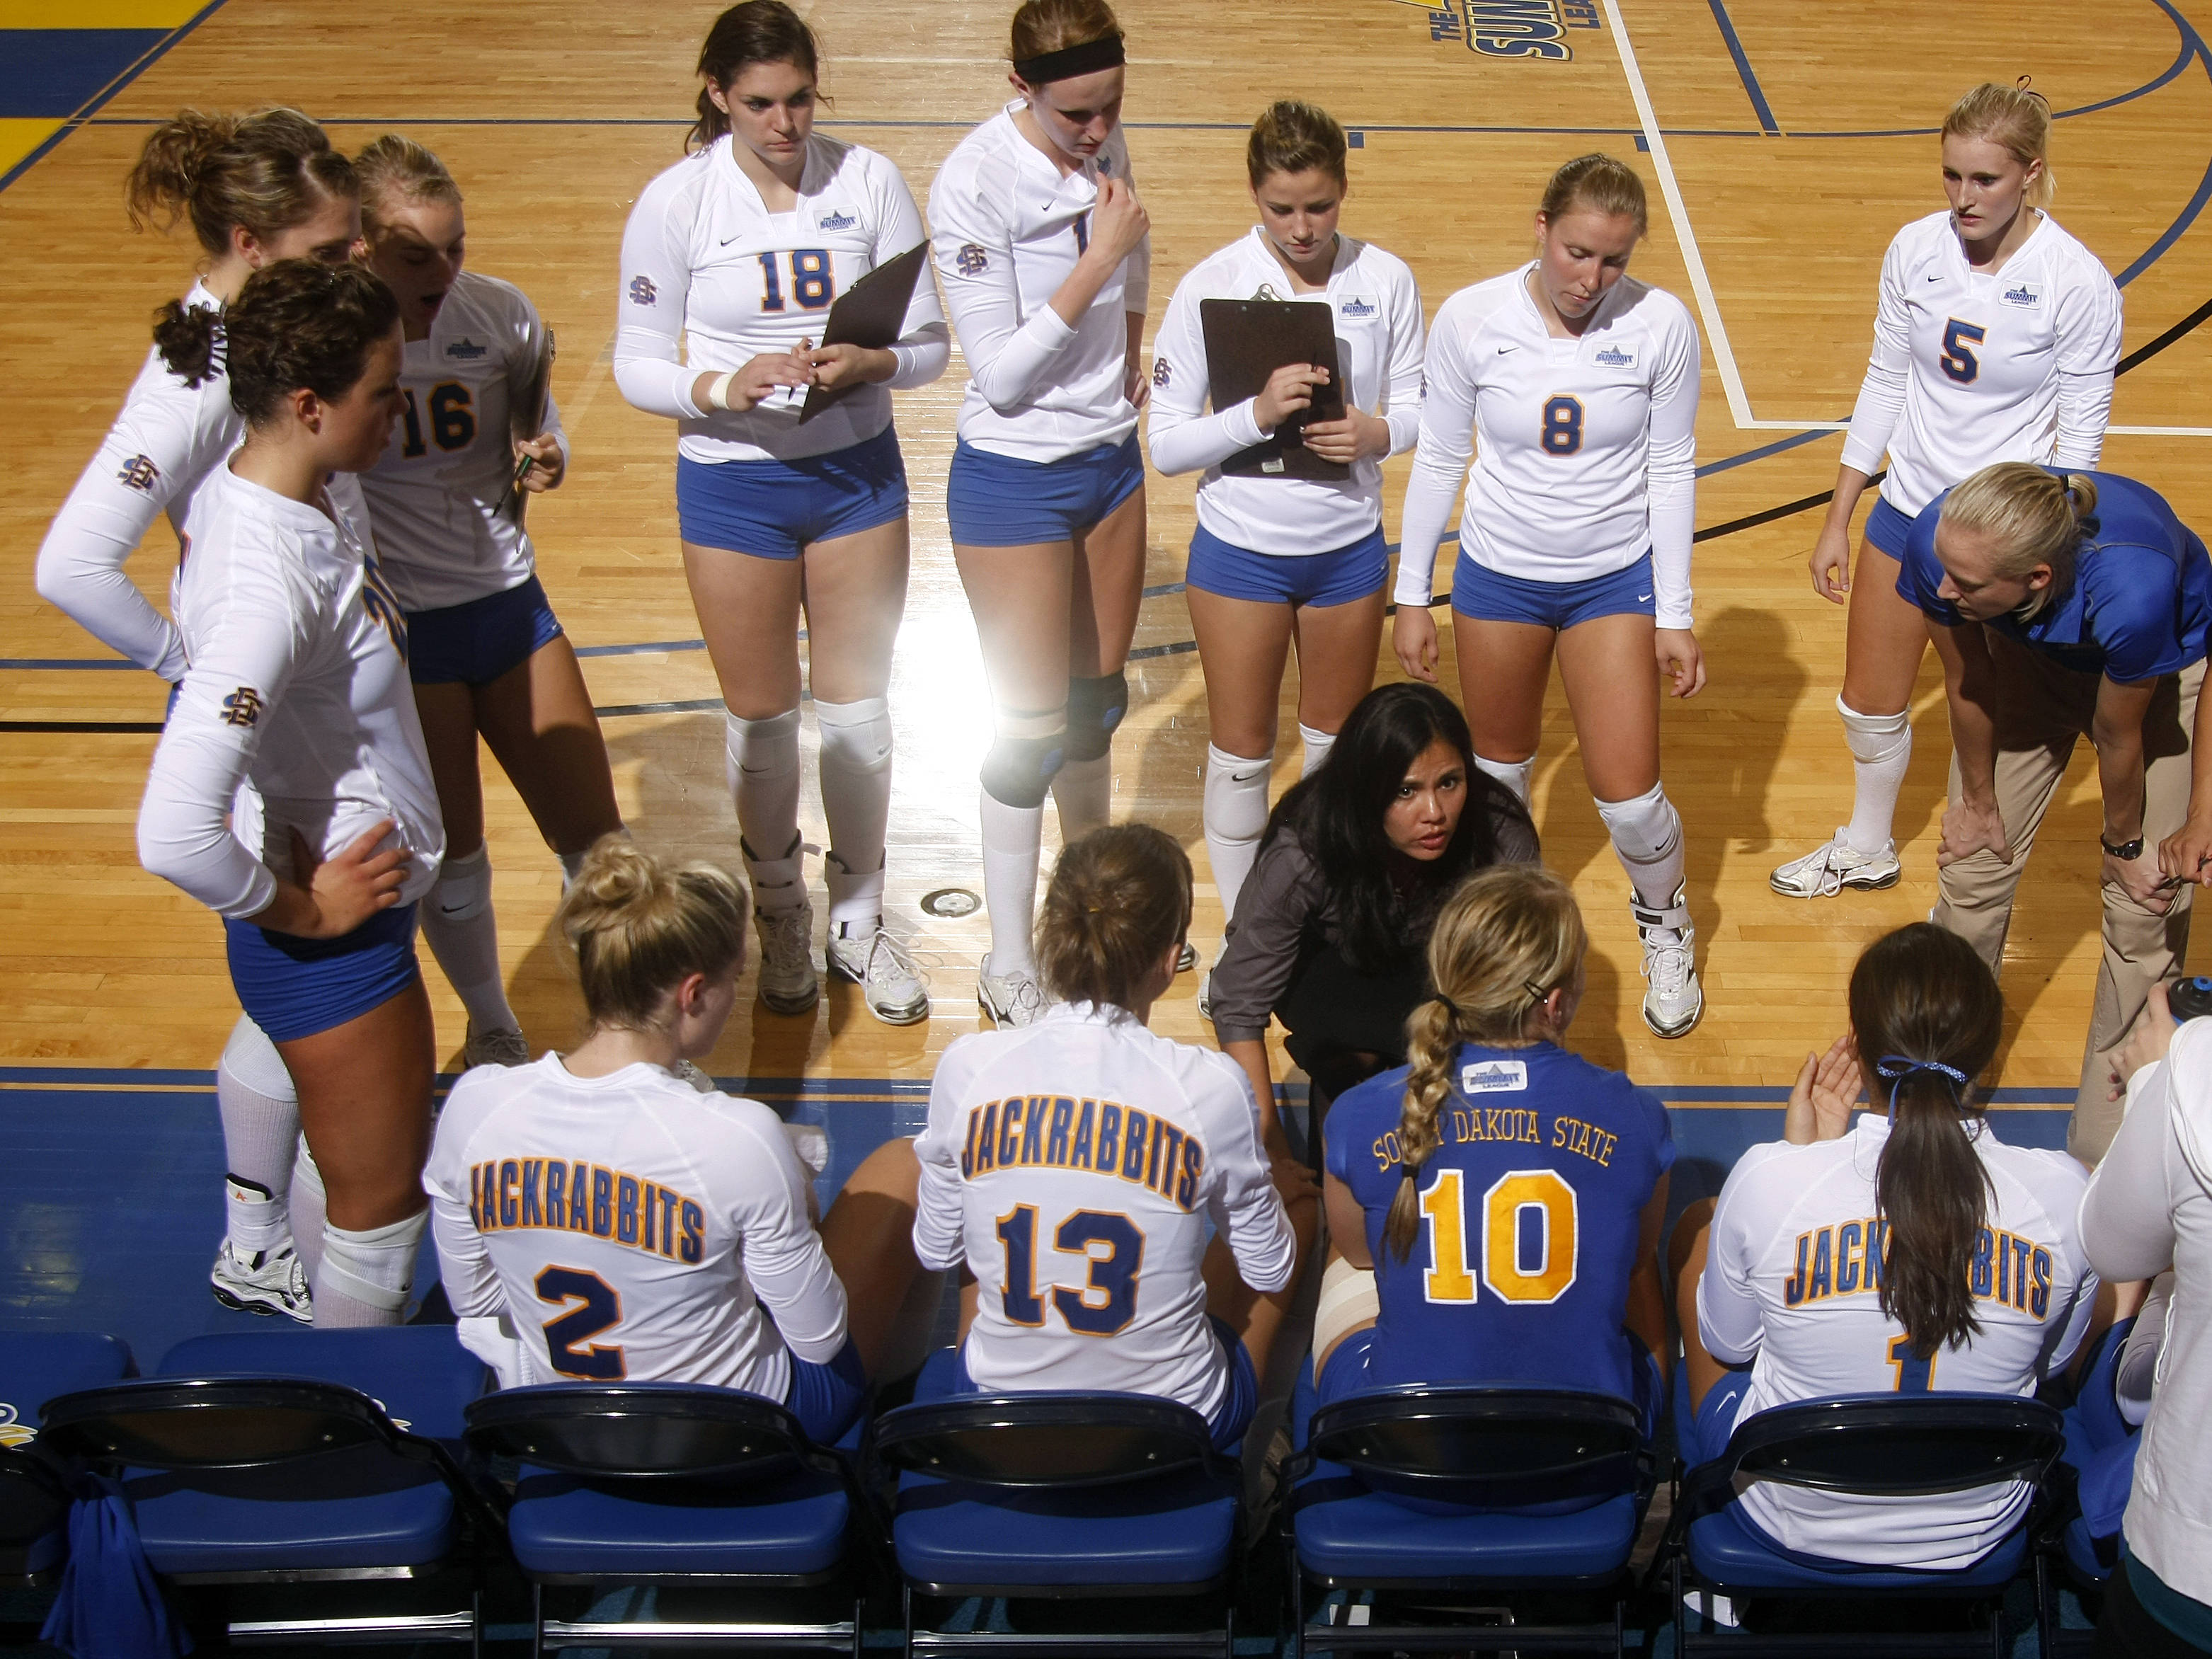 South Dakota State Athletics - Jackrabbit volleyball hosts ...